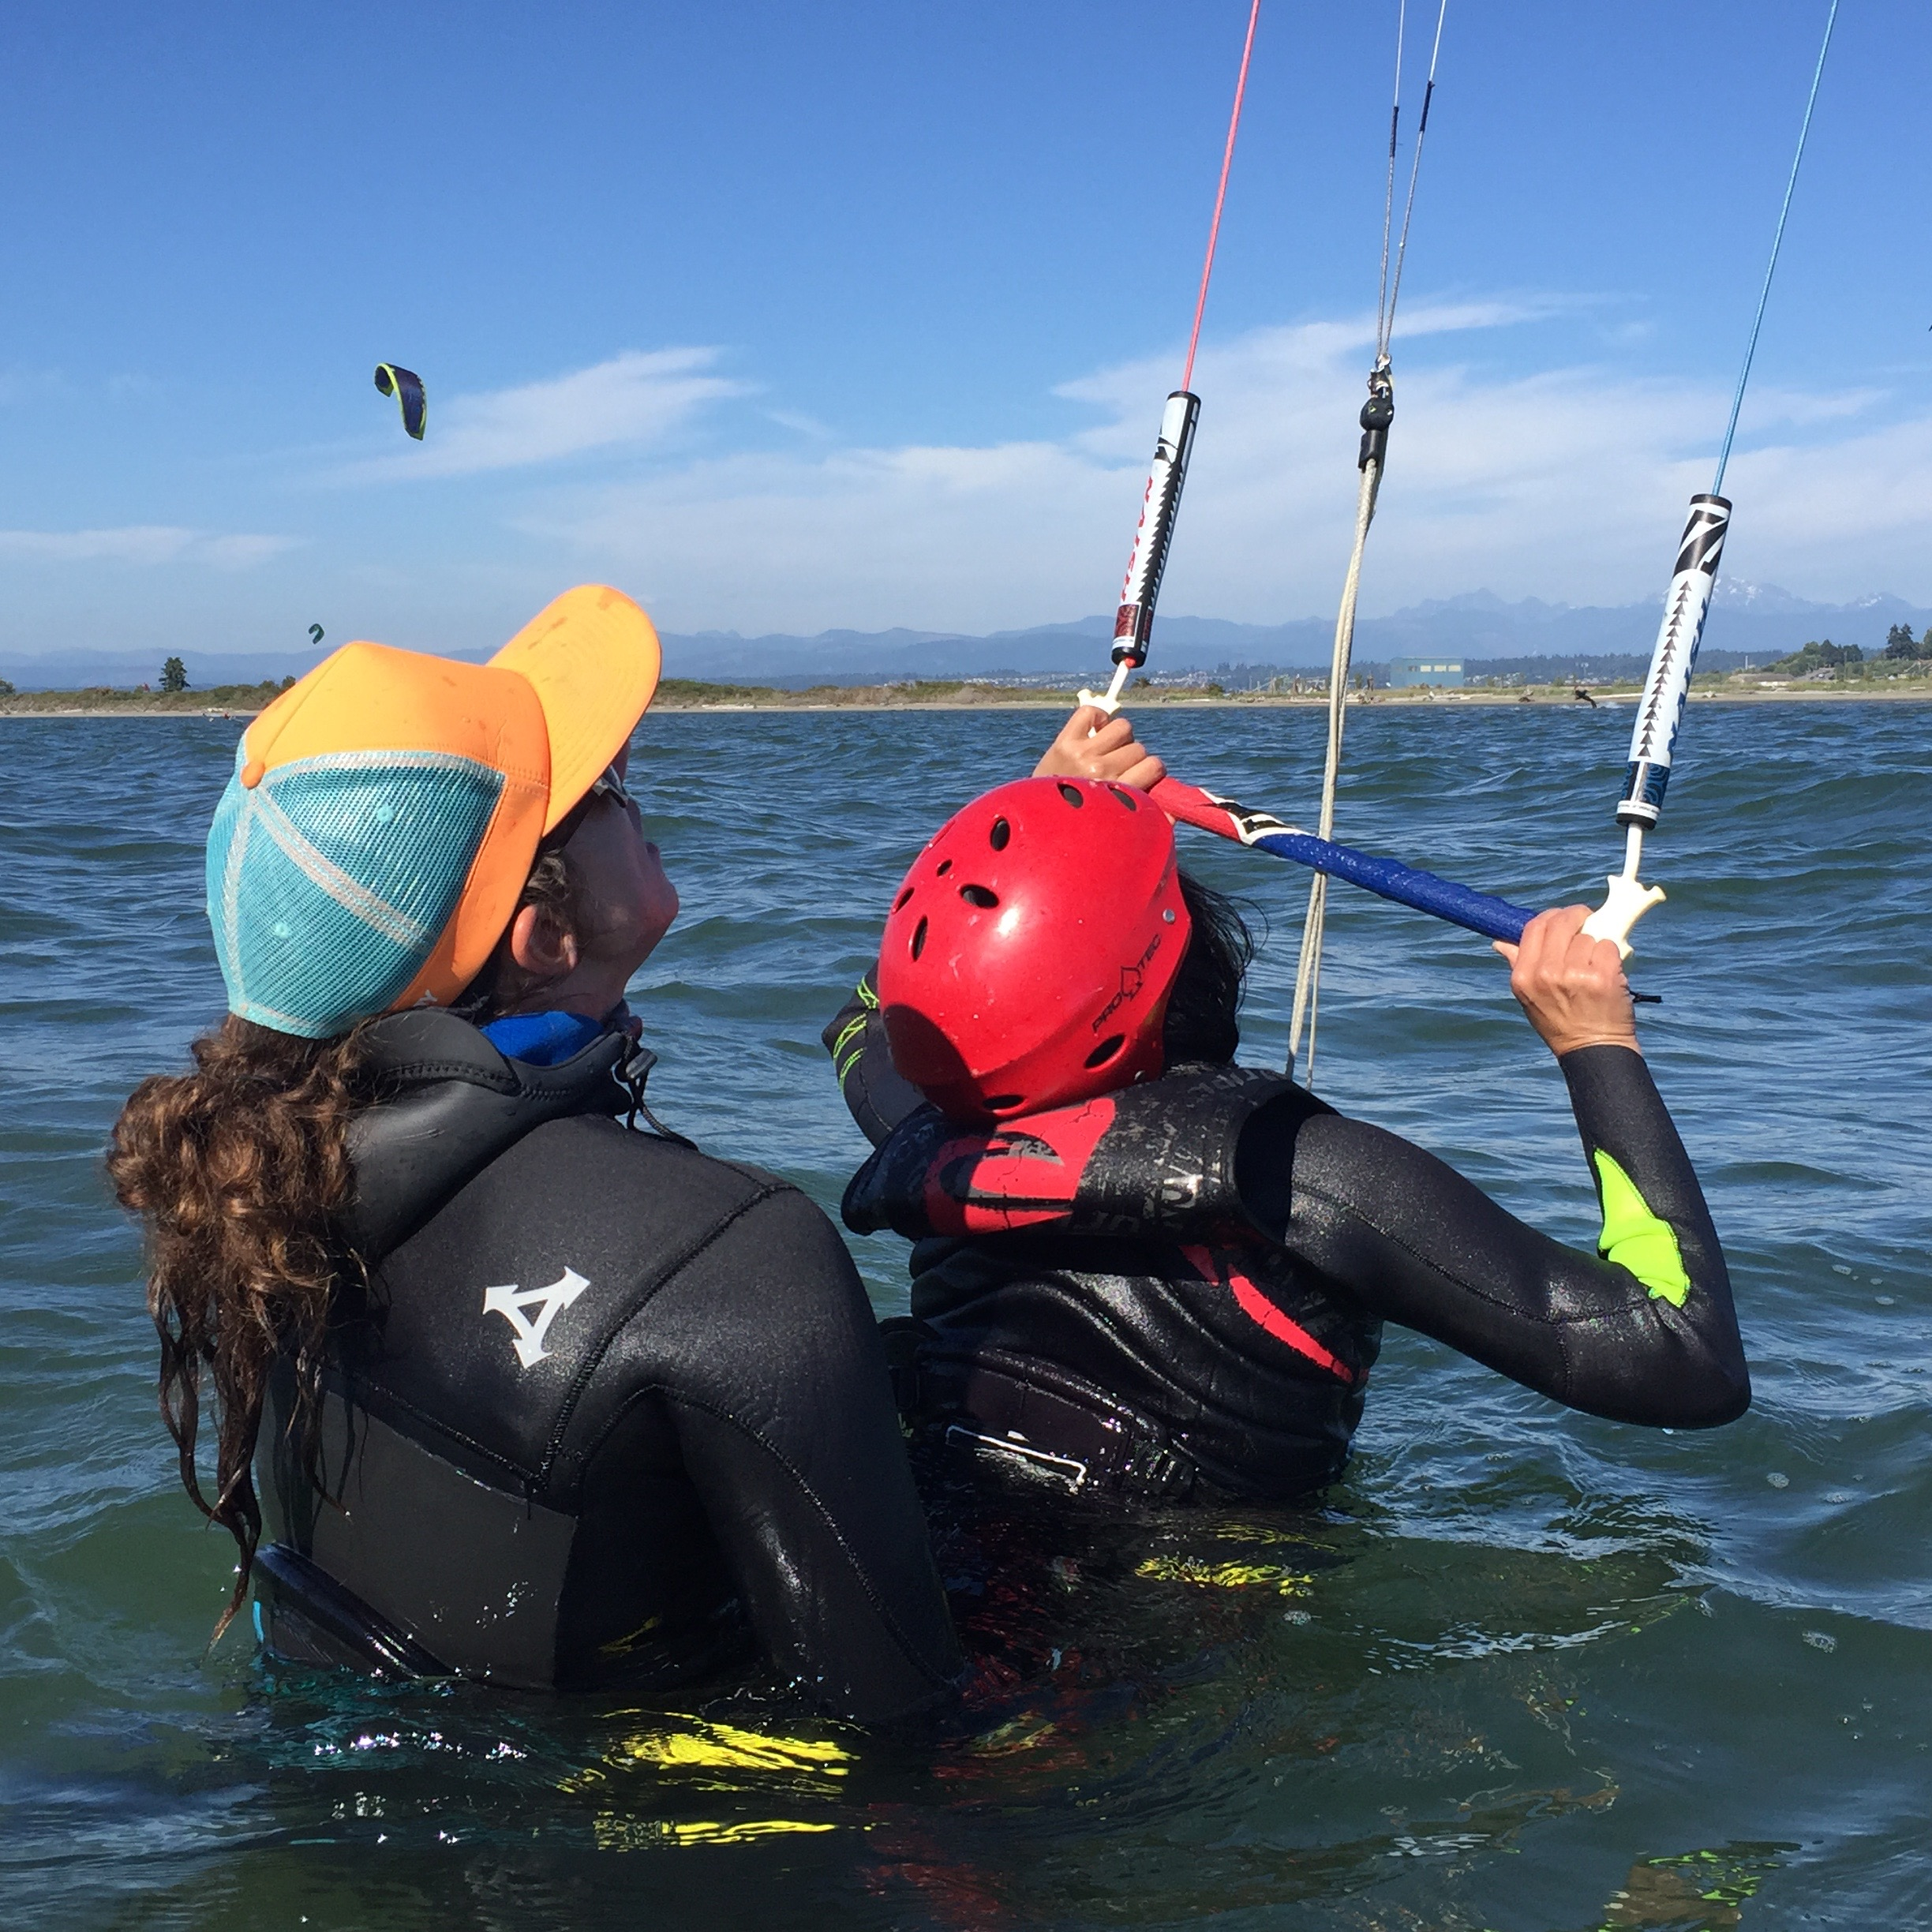 Second Kiteboard Lesson In Shallow Water at Jetty Island